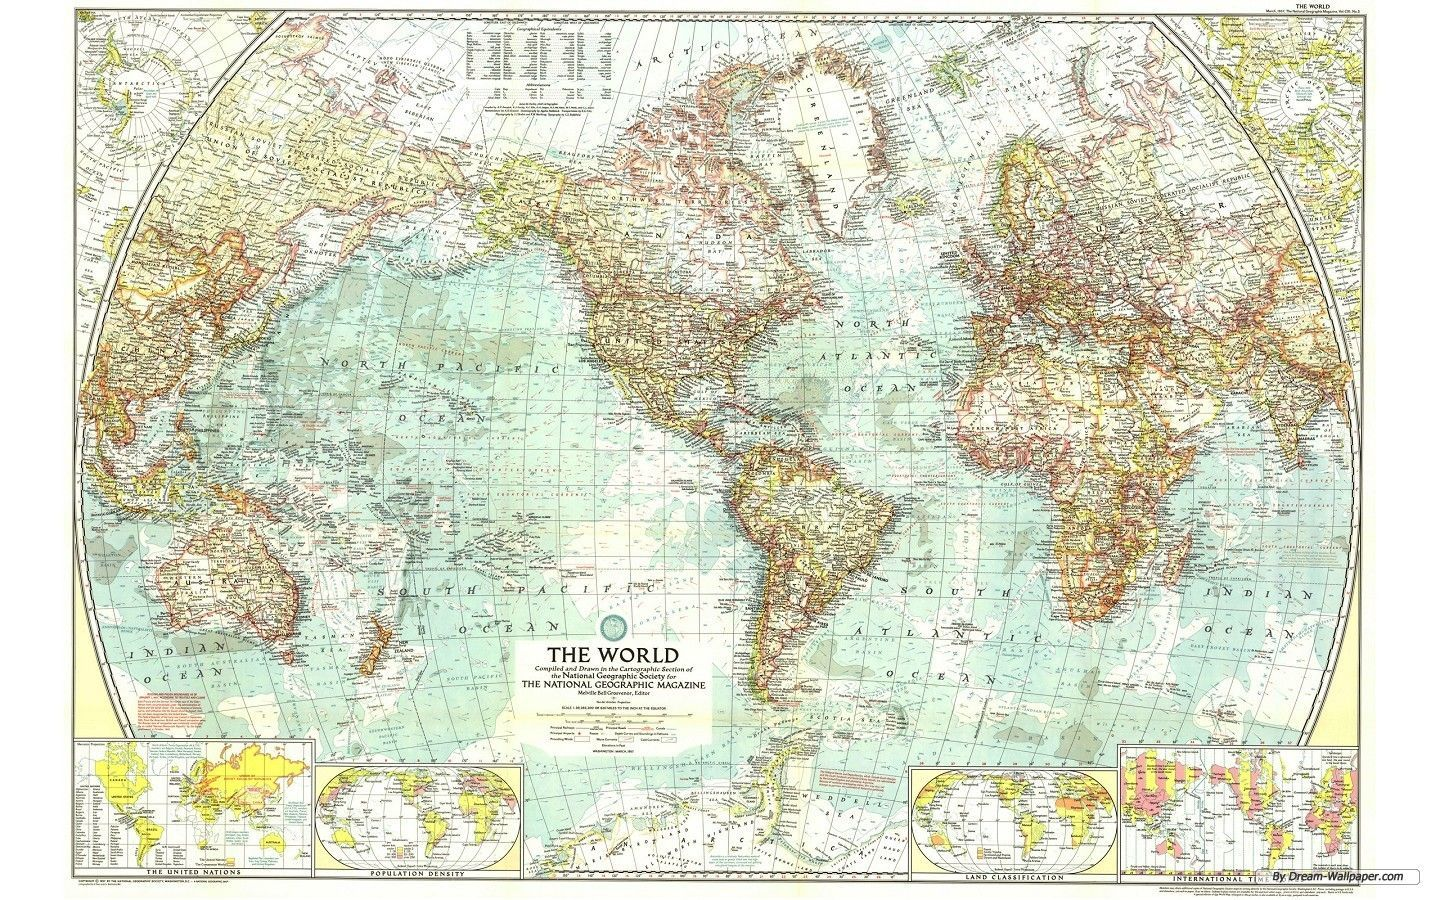 World map tumblr transparent backgrounds wallpaper cave background world map tumblr transparent backgrounds wallpaper cave background bnthyg 1440900 gumiabroncs Images